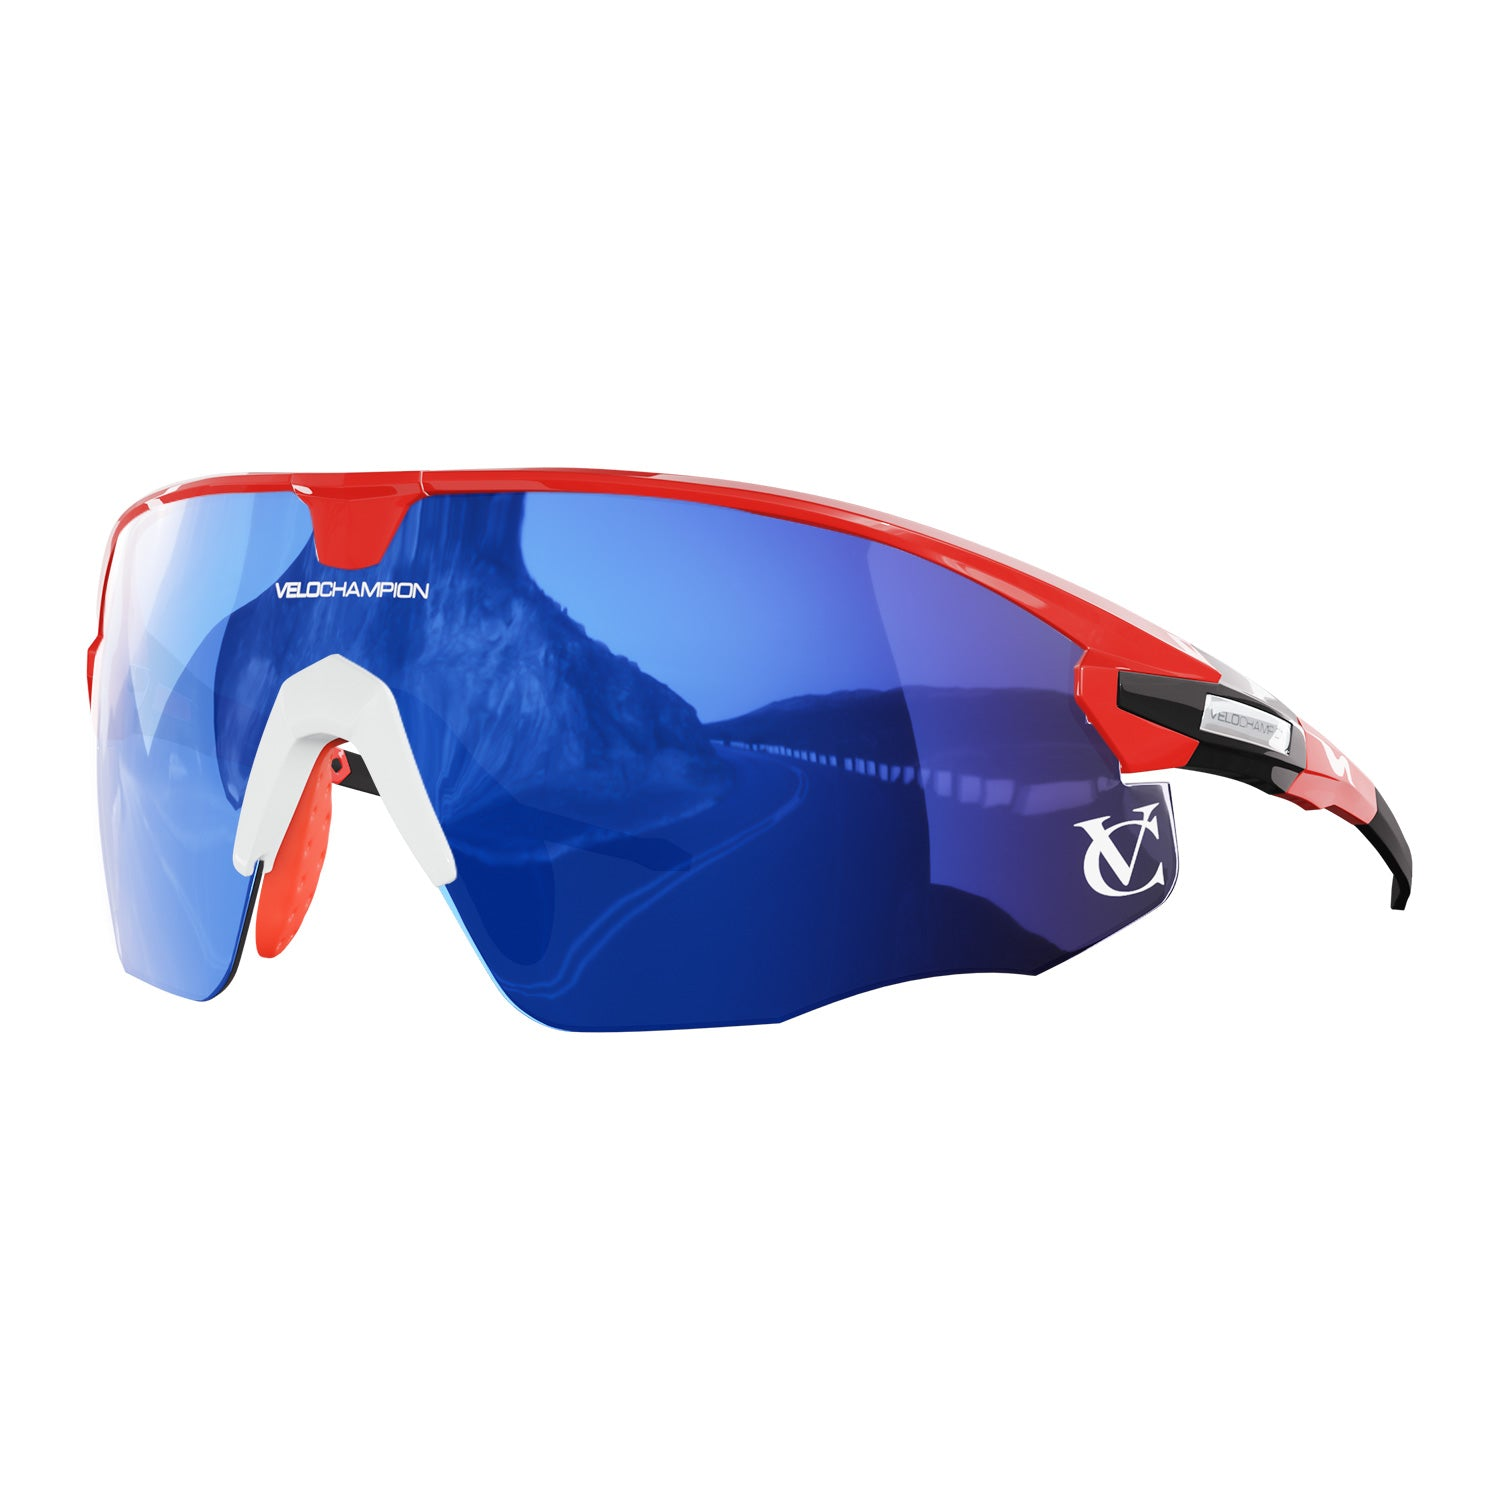 Special edition Tour of Britain cycling sunglasses | Exclusive Missile cycling glasses collection | VeloChampion